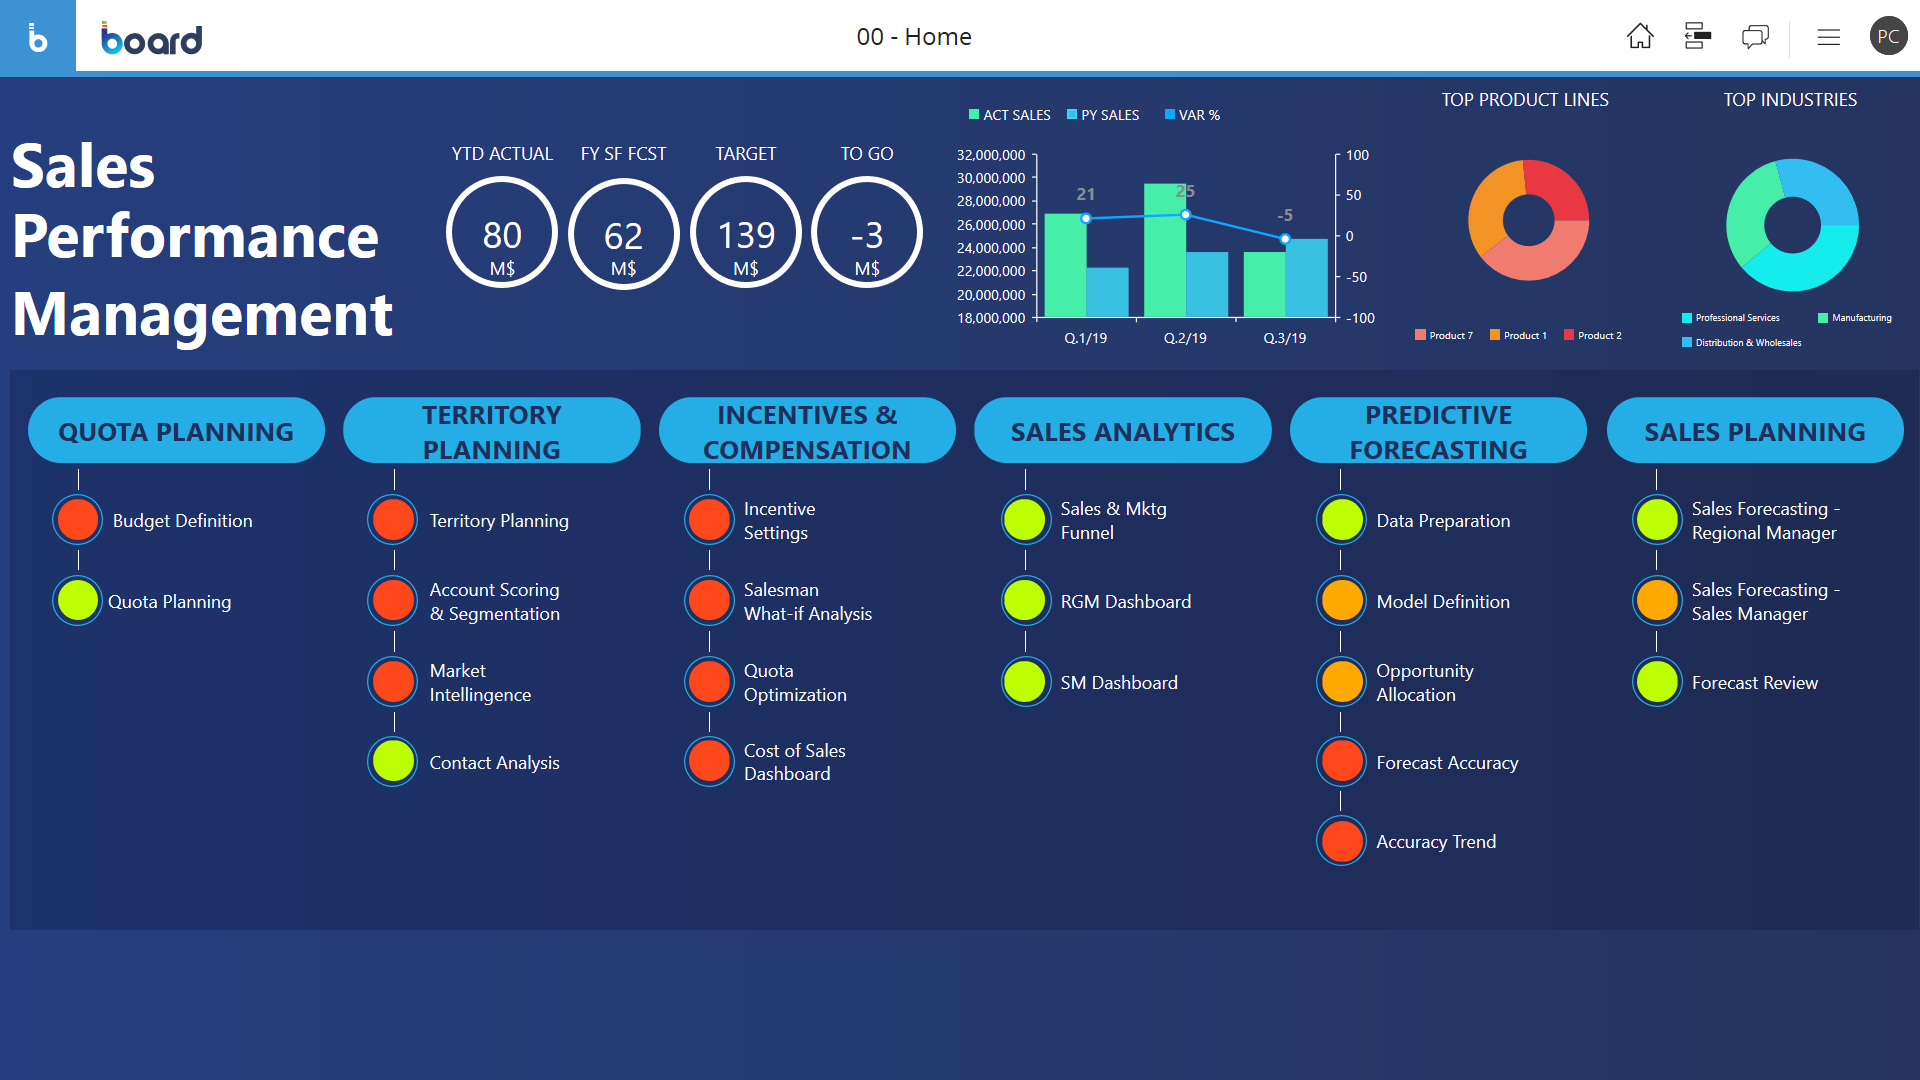 Sales performance management: Board software's homepage